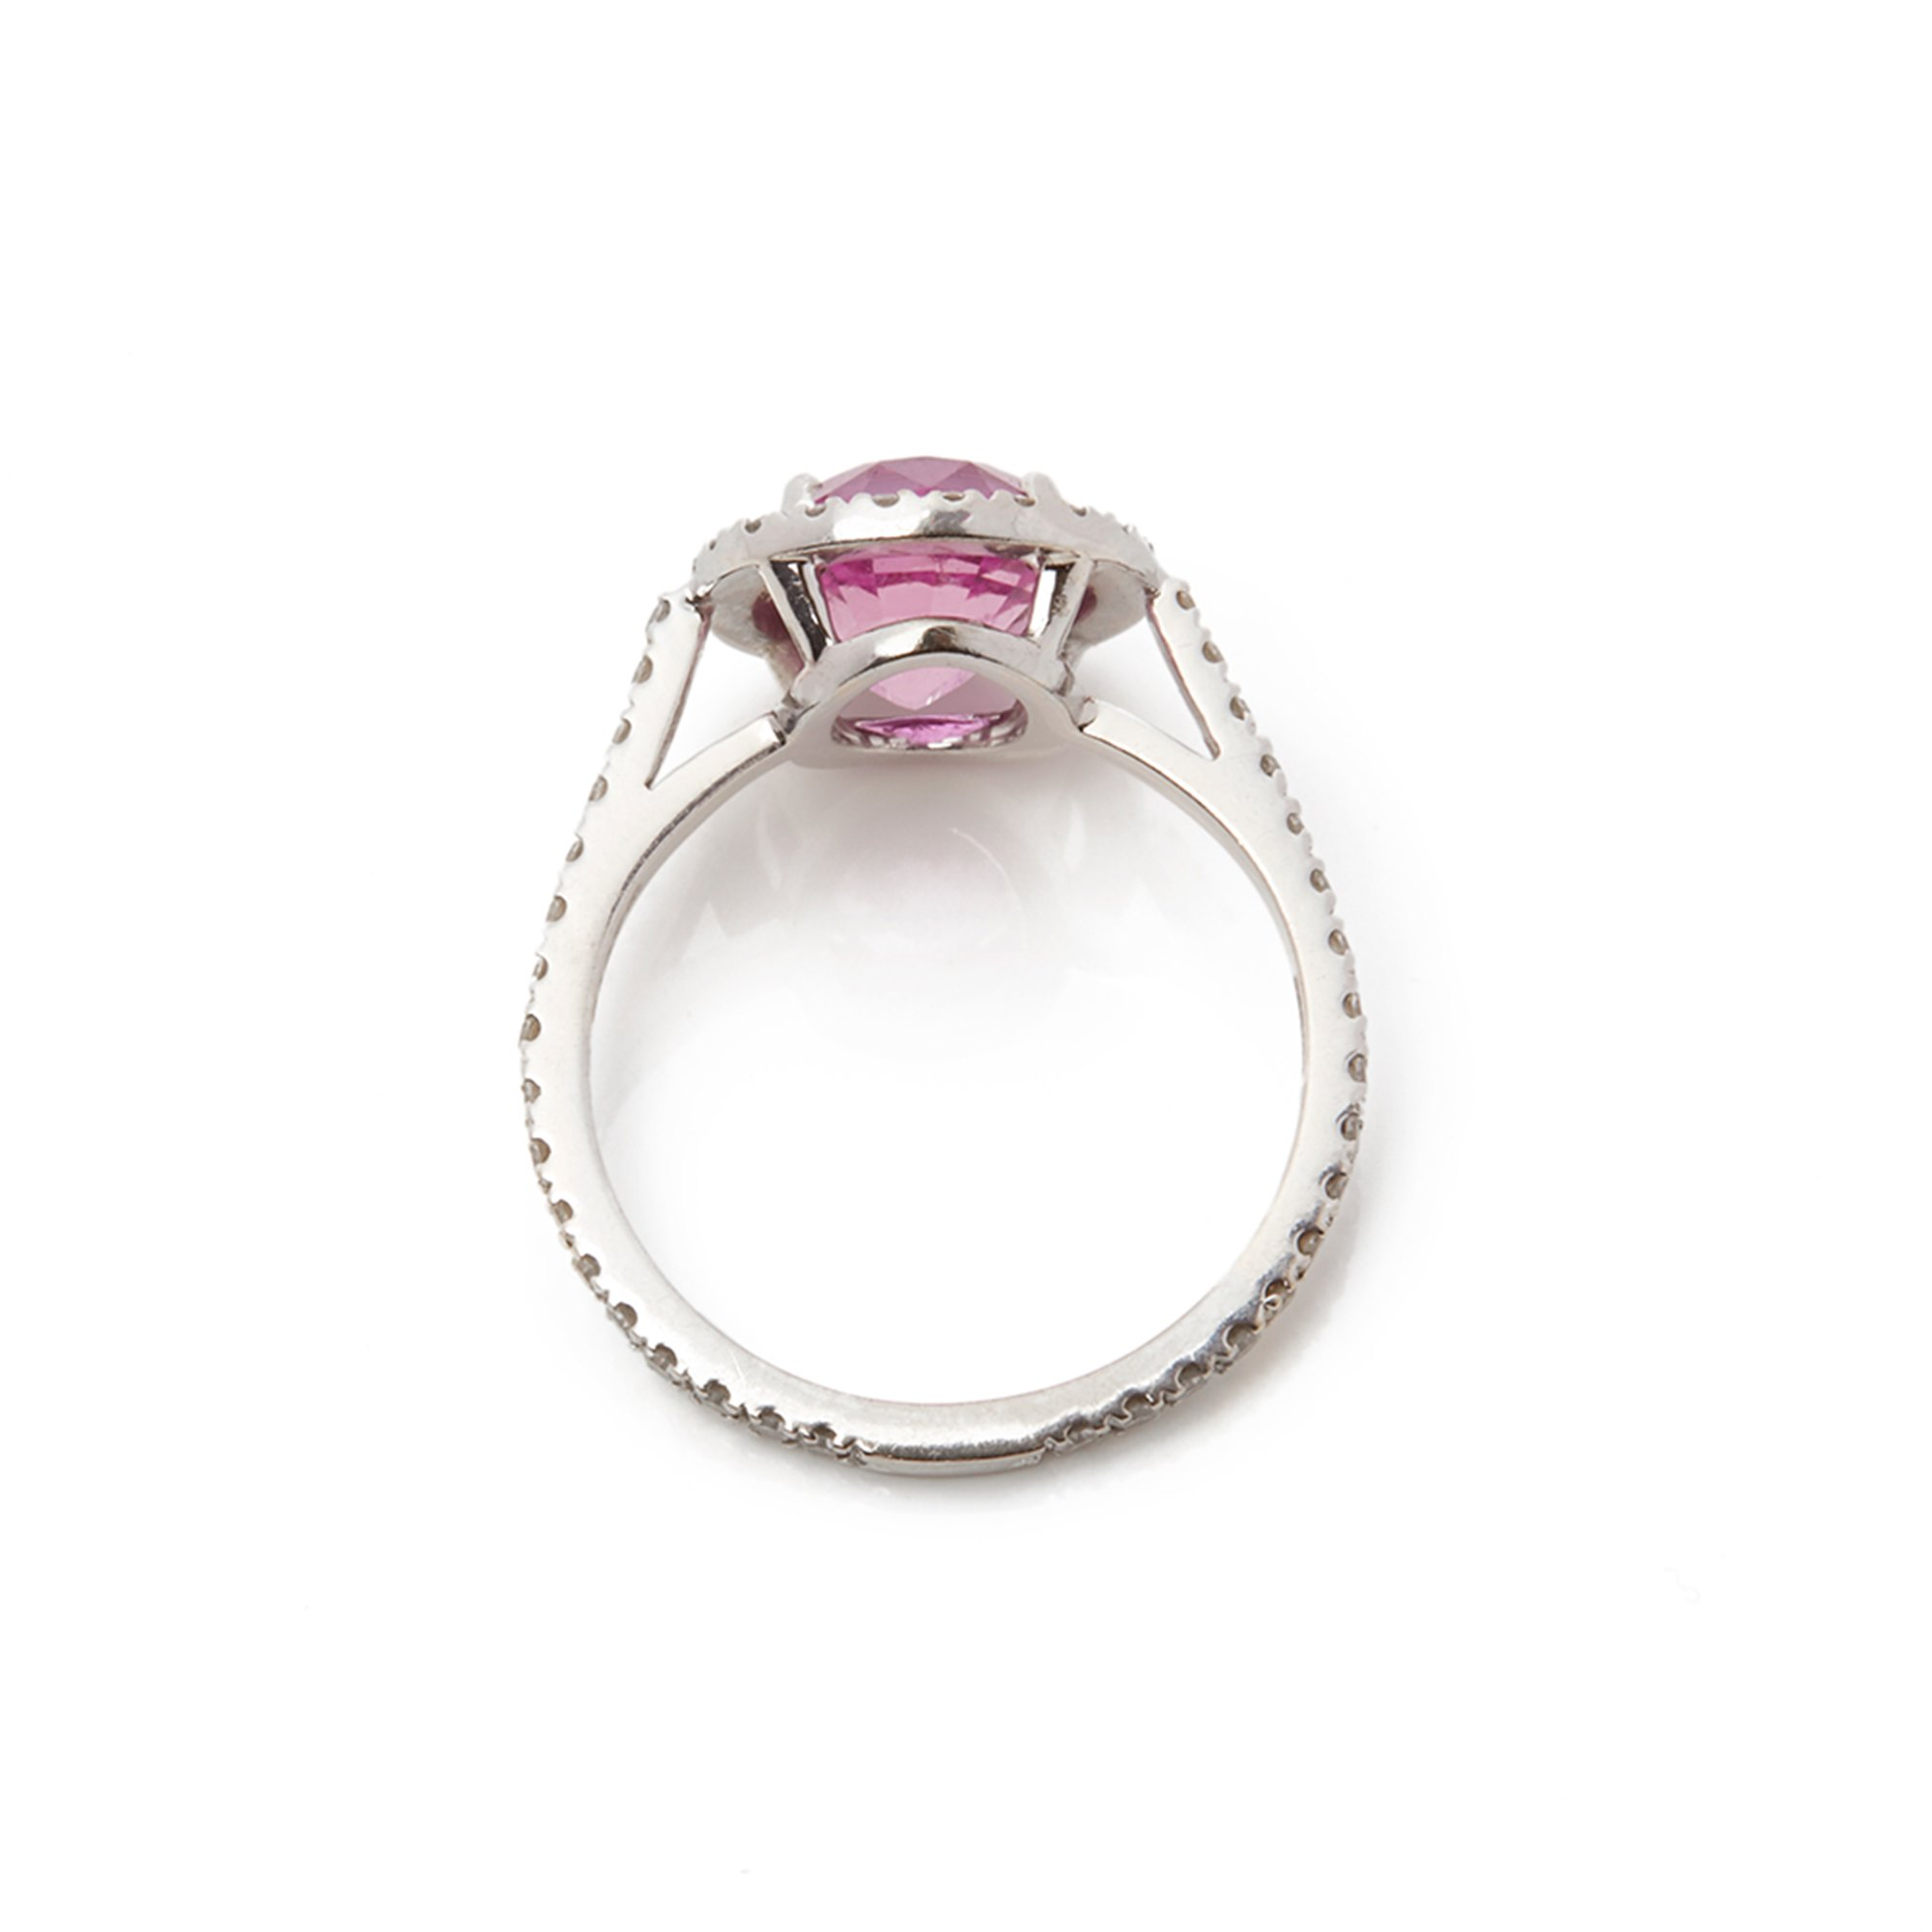 David Morris 18k White Gold Pink Sapphire & Diamond Cocktail Ring